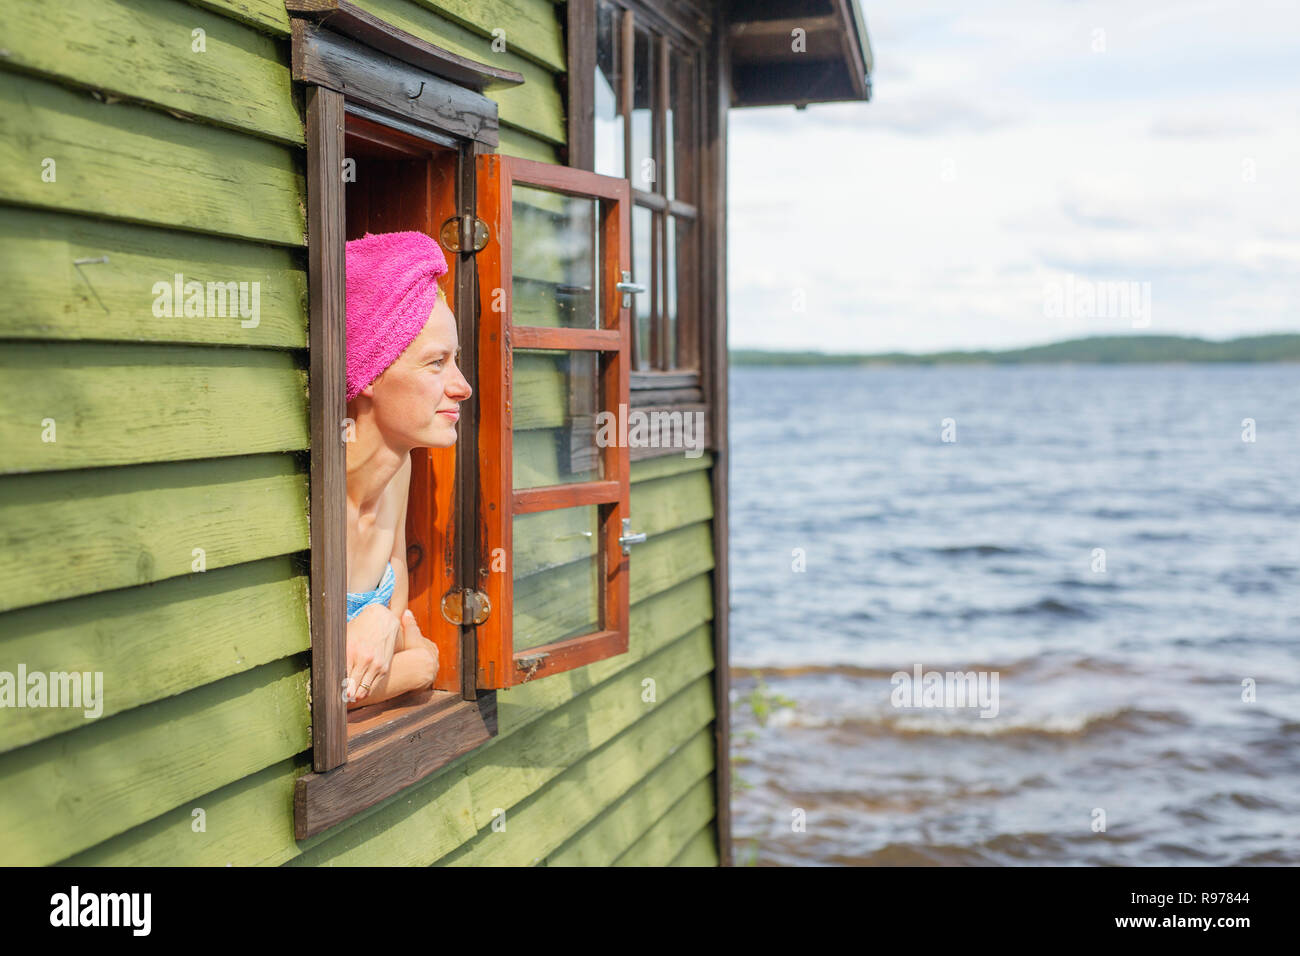 Mid adult woman looking out the window of a sauna in Finland - Stock Image